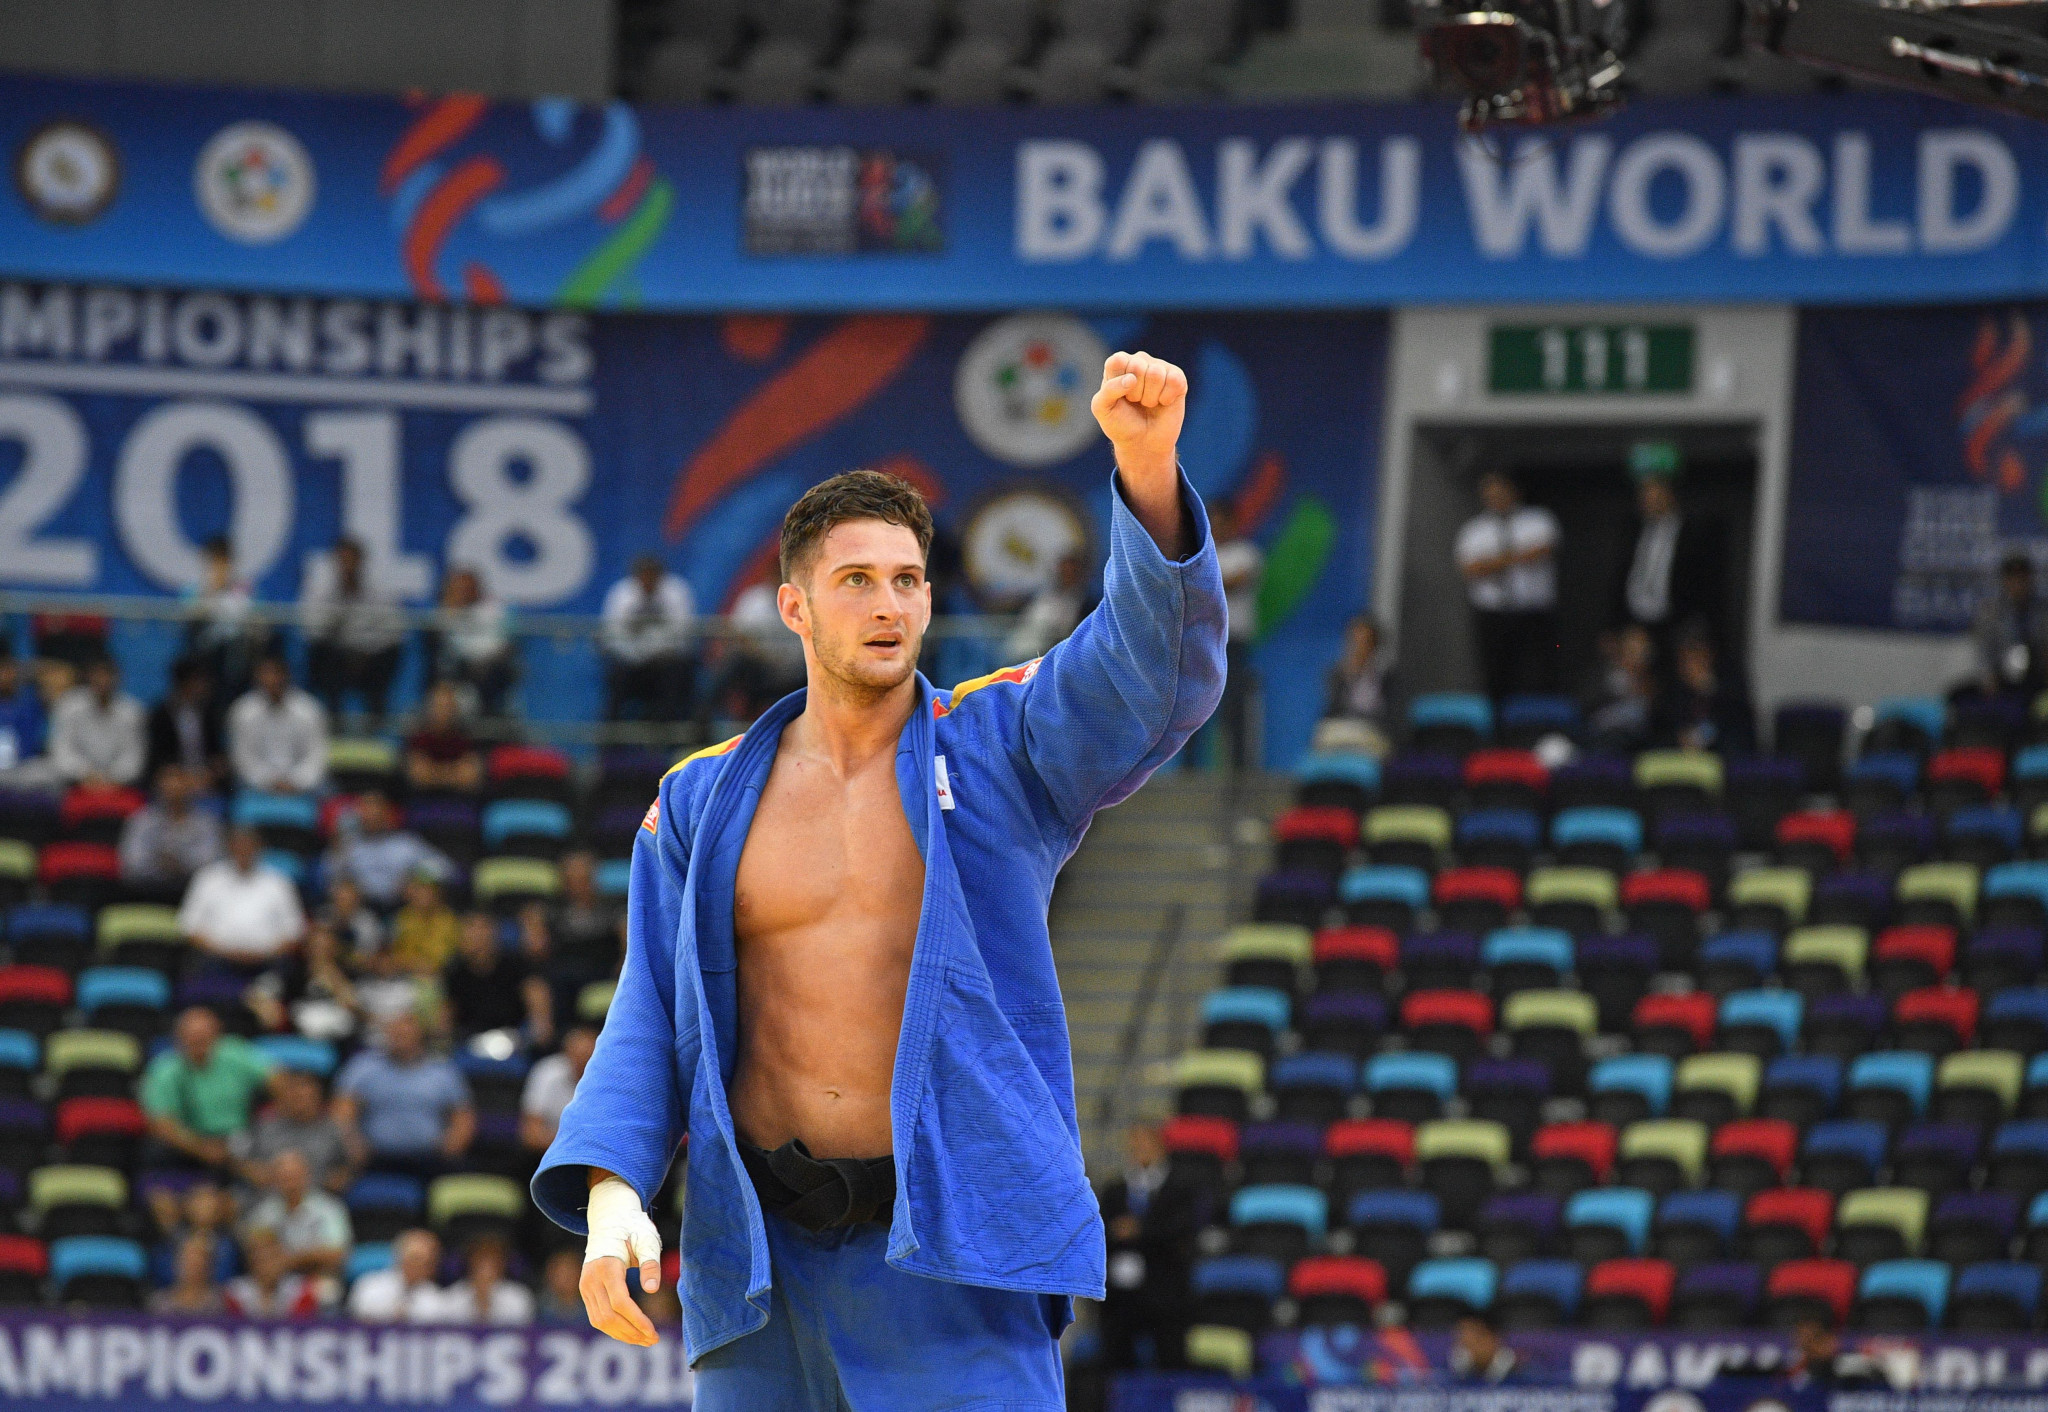 Spain's judo world champion Nikoloz Sherazadishvili will represent the country at the European Games in Minsk ©Getty Images